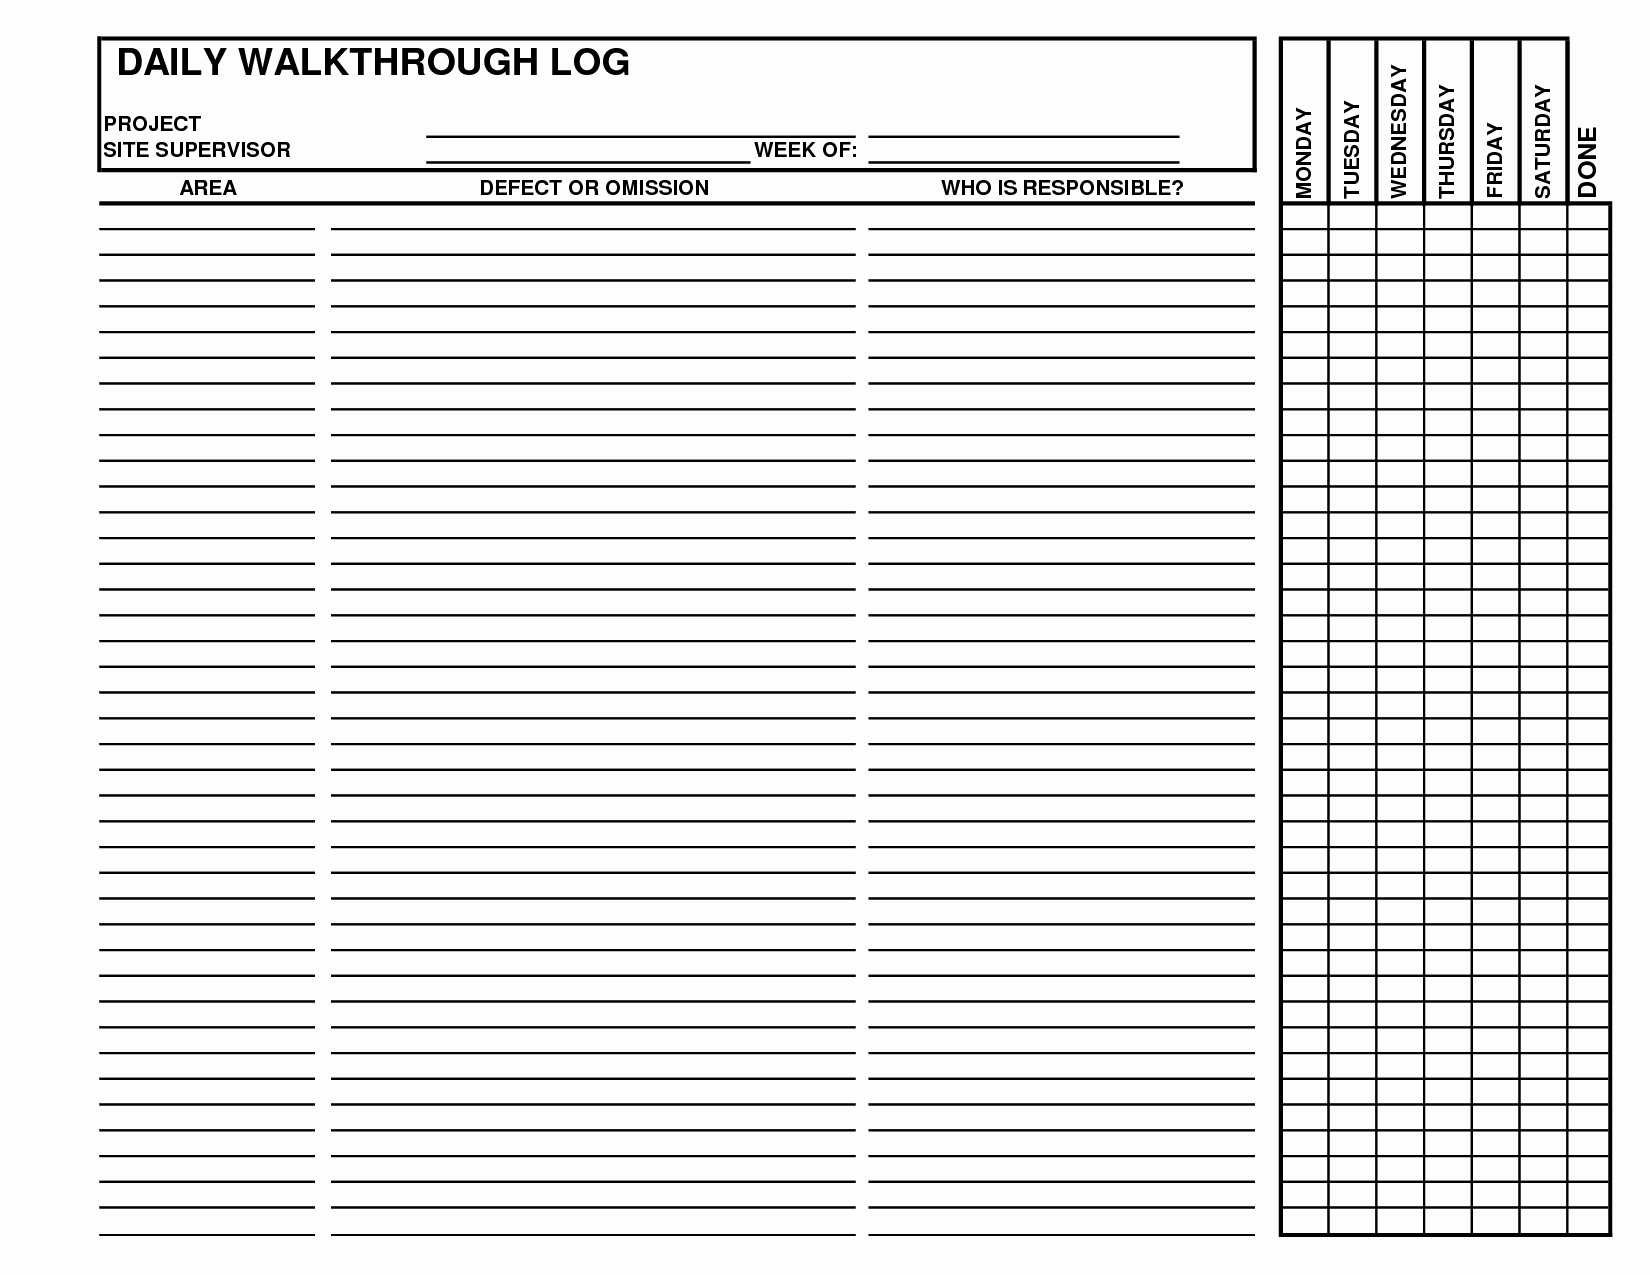 Construction Daily Log Template Luxury Best S Of Daily Log Examples Daily Log Book